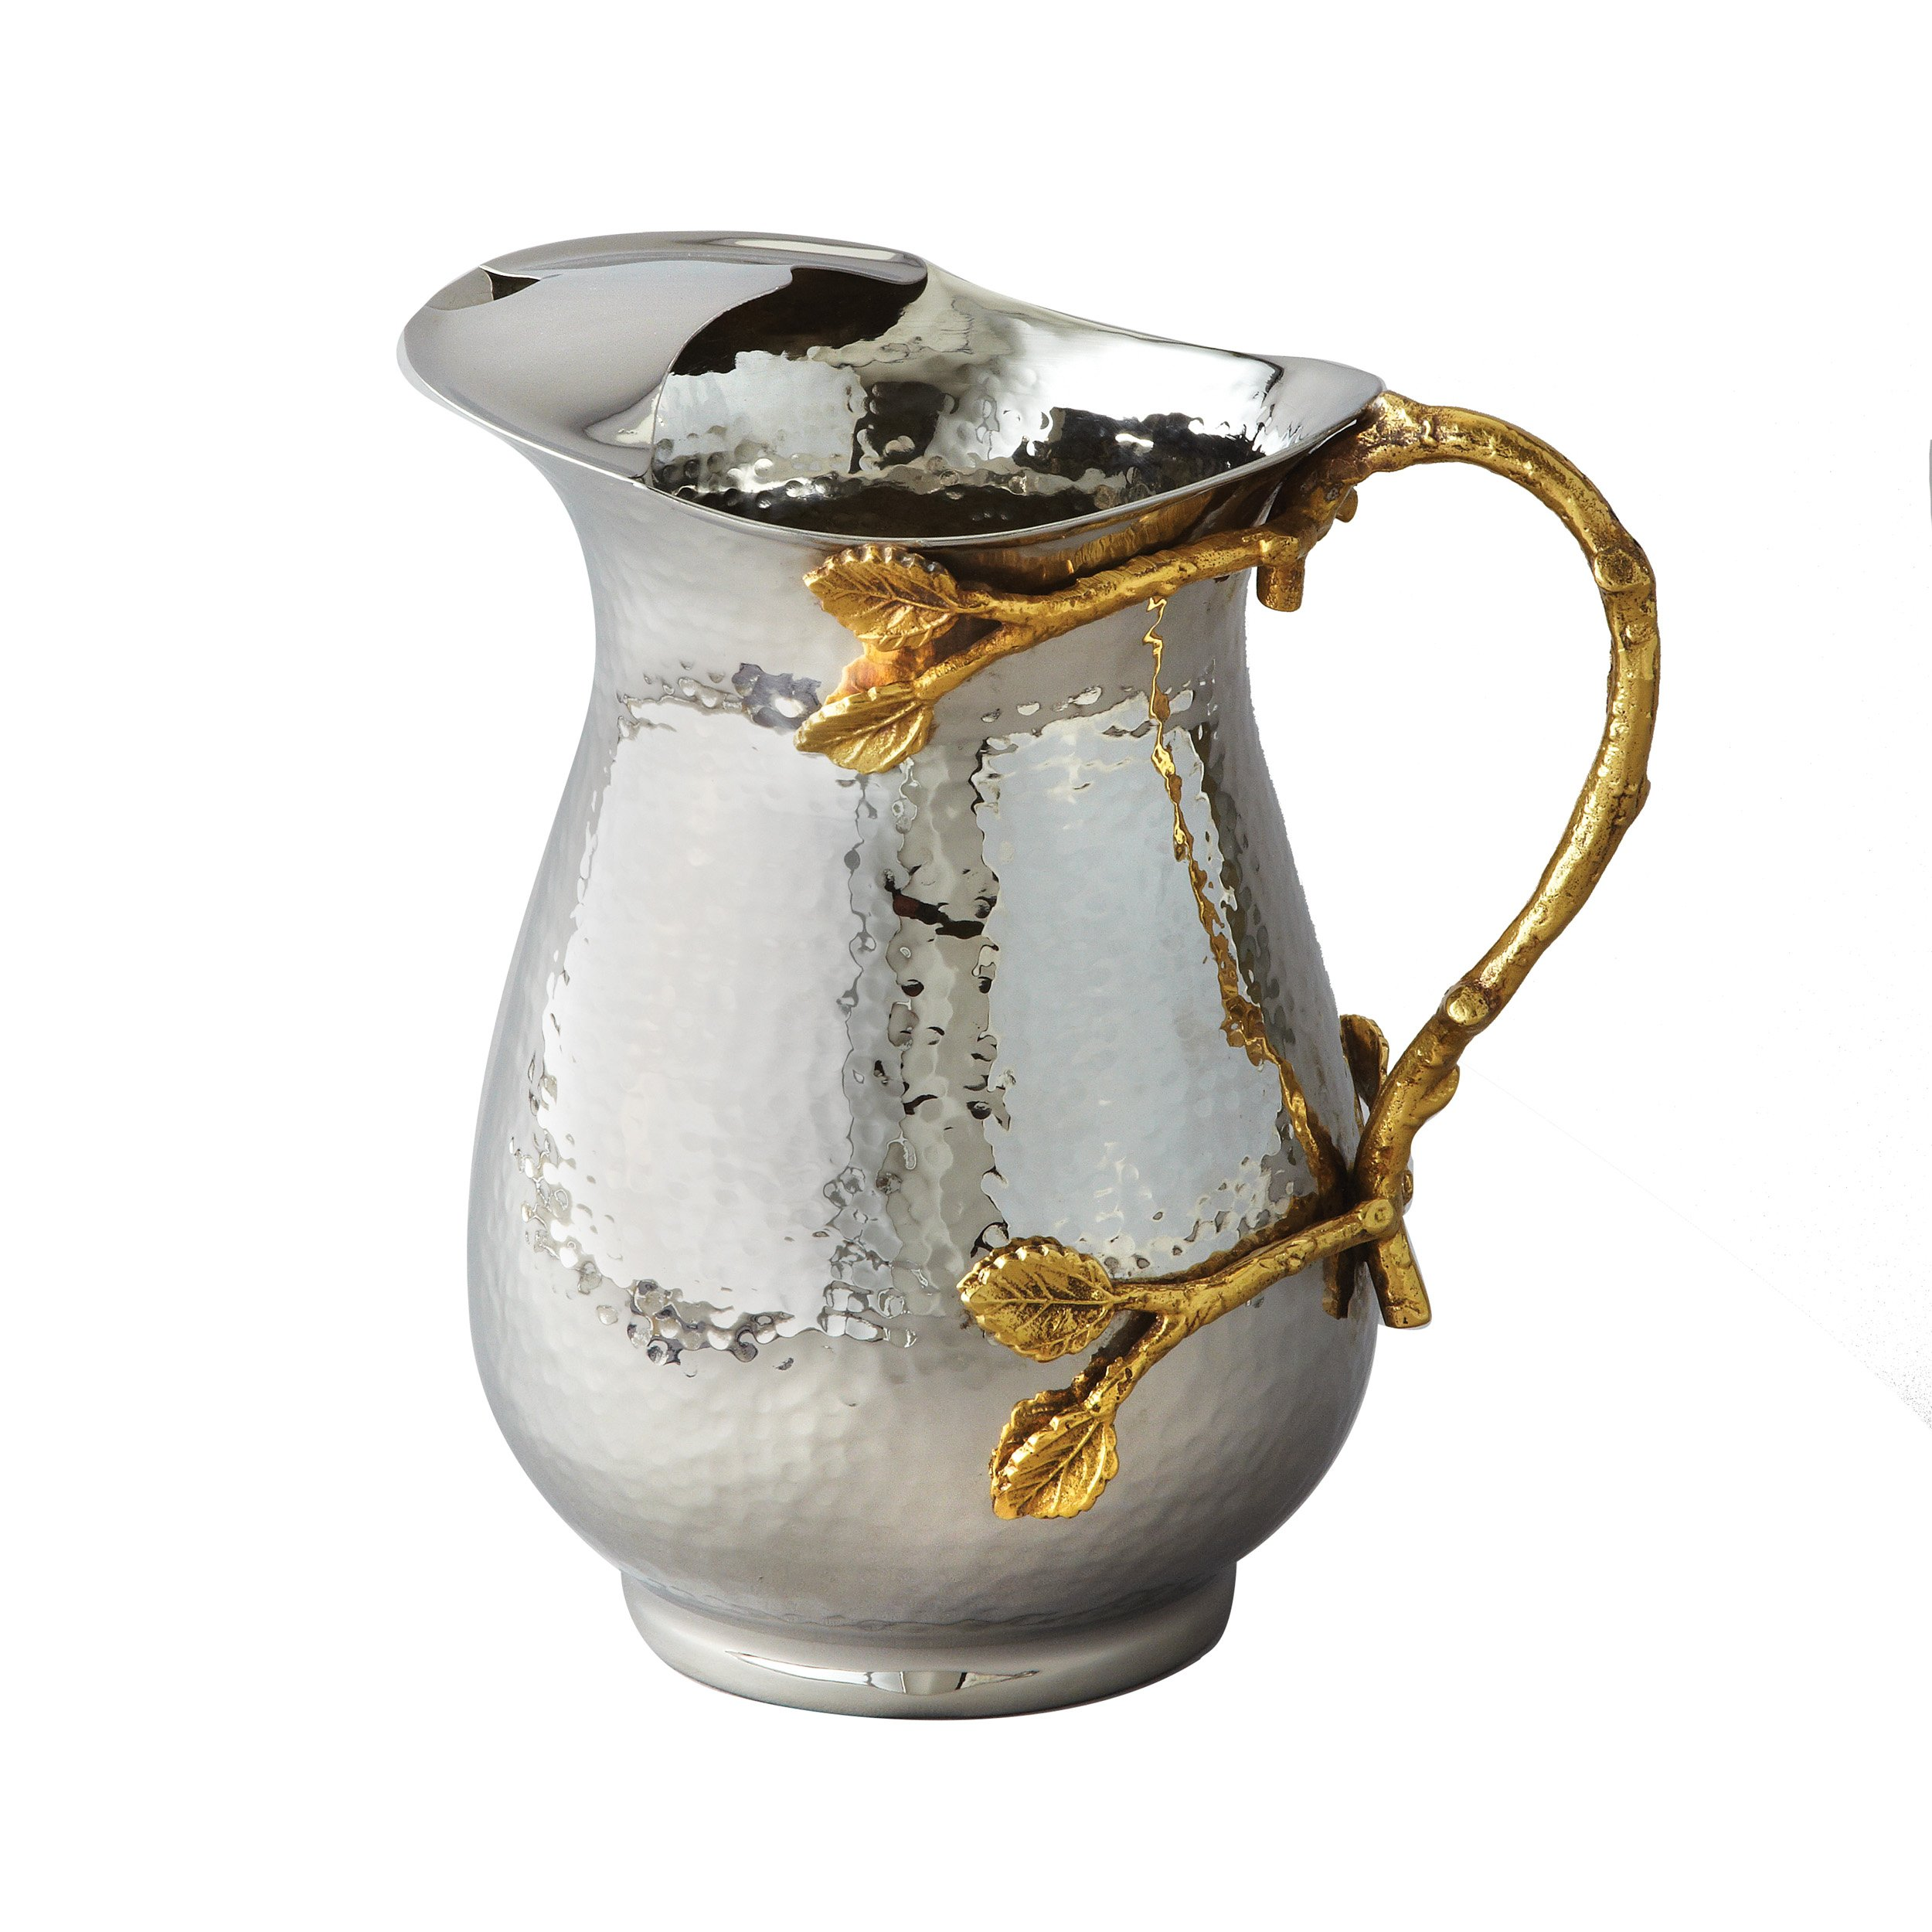 Elegance Golden Vine Stainless Steel Pitcher, Silver/Gold